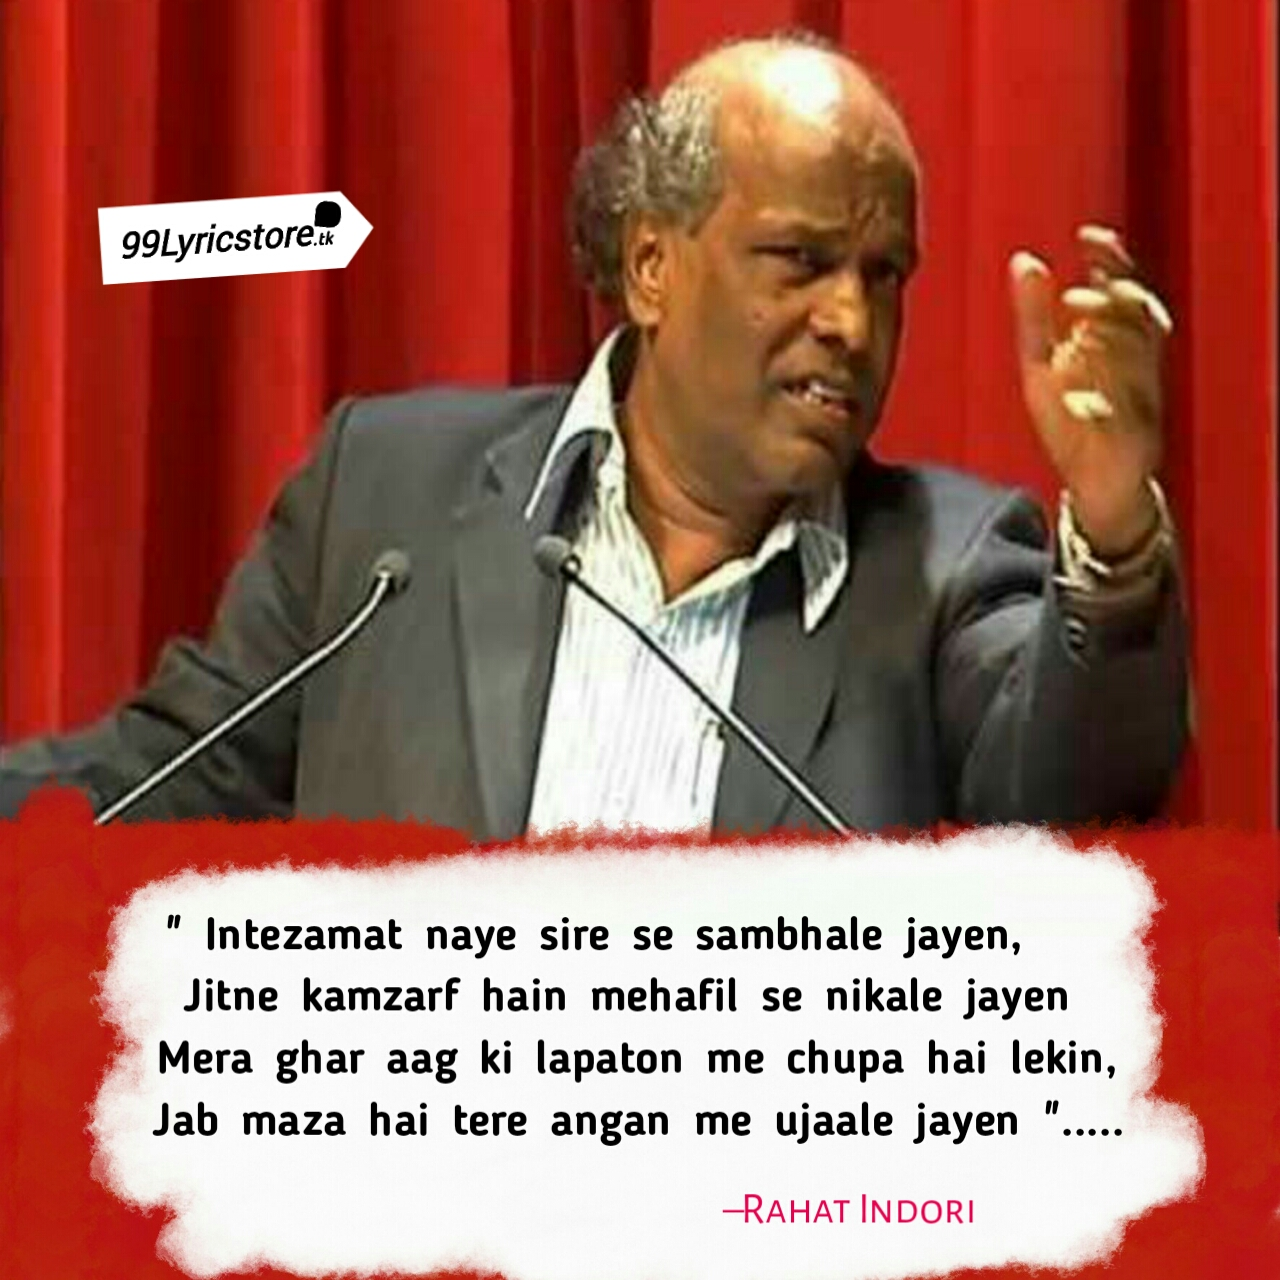 Intezamat Naye Sire Se Sambhale Jayein – Rahat Indori | Ghazal Poetry, Rahat Indori ghazal, rahat indori ghazal lyrics, rahat indori ghazals hindi, rahat indori ghazal in hindi font,  rahat indori ghazal mushaira, rahat indori ghazal in urdu, rahat indori ghazal youtube,  rahat indori ghazal list, rahat indori ghazal in urdu, rahat indori poem in hindi, राहत इंदौरी ग़ज़ल, rahat indori all ghazal in hindi, rahat indori all ghazal, rahat indori ki ghazal,  rahat indori best ghazal, rahat indori ghazal collection,  dr rahat indori ghazal, rahat indori famous ghazal, rahat indori full ghazal, rahat indori ghazal hindi, rahat indori poem hindi, rahat indori ghazal in hindi, राहत इंदौरी ग़ज़ल इन हिंदी, rahat indori ki ghazal in hindi, rahat indori ki ghazal mushaira, rahat indori ki poem, dr rahat indori ki ghazal, a dr rahat indori ka ghazal, rahat indori latest ghazal, rahat indori motivational poem, rahat indori ki ghazal video, rahat indori new ghazal, rahat indori new poem, rahat indori ki new ghazal,  rahat indori romantic ghazal, rahat indori ghazal shayari, rahat indori sahab ka ghazal, राहत इंदौरी ग़ज़ल शायरी, rahat indori urdu ghazal, rahat indori ghazal video, rahat indori poem video, ghazal lyrics by rahat indori, rahat indori ghazal lyrics in hindi, rahat indori sher in hindi,  rahat indori sher in hindi images, rahat indori best shayari in hindi, rahat indori shayri, rahat indori shayari in hindi, rahat indori sher, rahat indori status, rahat indori poetry, rahat indori ghazal, rahat indori quotes, rahat indori shayar, rahat indori shayri image, rahat indori youtube, rahat indori ki shayariya, rahat indori ke sher, rahat indori sahab, rahat indori lyrics, rahat indori shayari video, राहत इंदौरी, rahat indori all india mushaira, rahat indori aasman laye ho, rahat indori all ghazal in hindi, rahat indori aisi sardi hai, rahat indori mushaira, rahat indori aasman thodi hai, rahat indori amrood pak rahe honge, rahat indori agar khilaf hai, rahat indori best,  rahat indori best shayari 2018, rahat indori best poetry, rahat indori bewafa shayari, rahat indori best quotes, rahat indori best poem, rahat indori best ghazal in hindi, rahat indori best kavi sammelan, rahat indori best ghazal, rahat indori collection, rahat indori chand pagal hai, rahat indori  shayari, rahat indori classic shayari, rahat indori jashn e rekhta, rahat indori in english, rahat indori shayri on election, Rahat indori love shayari, rahat indori love Ghazal, rahat indori love poetry in Hindi, rahat indori love quotes in Hindi, rahat indori love quotes in two line, rahat indori mushaira, rahat indori mushaira video,  rahat indori mushaira in hindi,  rahat indori mushaira lyrics,   rahat indori mushaira latest,   rahat indori mushaira ghazal,   राहत इन्दोरी मुशाइरा,   dr rahat indori mushaira 2018 mehfil e mushaira,  rahat indori etv urdu mushaira,  rahat indori all mushaira,   rahat indori ki ghazal mushaira,  rahat indori mushaira in hindi,  hind mushaira rahat indori Rahat indori poetry, rahat indori poetry in hindi, rahat indori poetry images, rahat indori poetry in english, rahat indori poetry in urdu,  rahat indori poetry on love, rahat indori poetry in hindi lyrics, rahat indori poetry on politics,  rahat indori poetry in urdu font, rahat indori poetry thodi hai, राहत इंदौरी पोएट्री, rahat indori all poetry, rahat indori all poems, rahat indori all poet, rahat indori poetry best, rahat indori best poetry in hindi, rahat indori best poetry in urdu, rahat indori best poem, dr rahat indori best poetry, poetry by rahat indori, rahat indori poetry collection, rahat indori poetry,  dr rahat indori poetry in urdu, rahat indori poetry funny, rahat indori famous poetry, rahat indori famous poem, rahat indori poetry in hindi font, rahat indori poetry hindi, rahat indori poem hindi, rahat indori hindi poet, rahat indori poetry images in hindi, rahat indori love poetry in hindi, rahat indori poetry in urdu, rahat indori poetry, rahat indori poem in hindi, rahat indori poet in hindi, rahat indori indian poet, rahat indori ki poetry, rahat indori ki poem, rahat indori poetry lyrics, rahat indori poetry love, rahat indori poetry lyrics in hindi, rahat indori latest poetry, rahat indori poetry 2 line, rahat indori motivational poem, rahat indori new poetry, rahat indori new poem, rahat indori old poetry, best of rahat indori poetry, poetry of rahat indori, poetry of rahat indori in urdu, poetry of rahat indori in hindi, rahat indori poetry pics, rahat indori urdu poetry, rahat indori poem in hindi,  poet rahat indori poetry, इन्तेज़ामात  नए सिरे से संभाले जाएँ  जितने कमज़र्फ हैं महफ़िल से निकाले जाएँ।